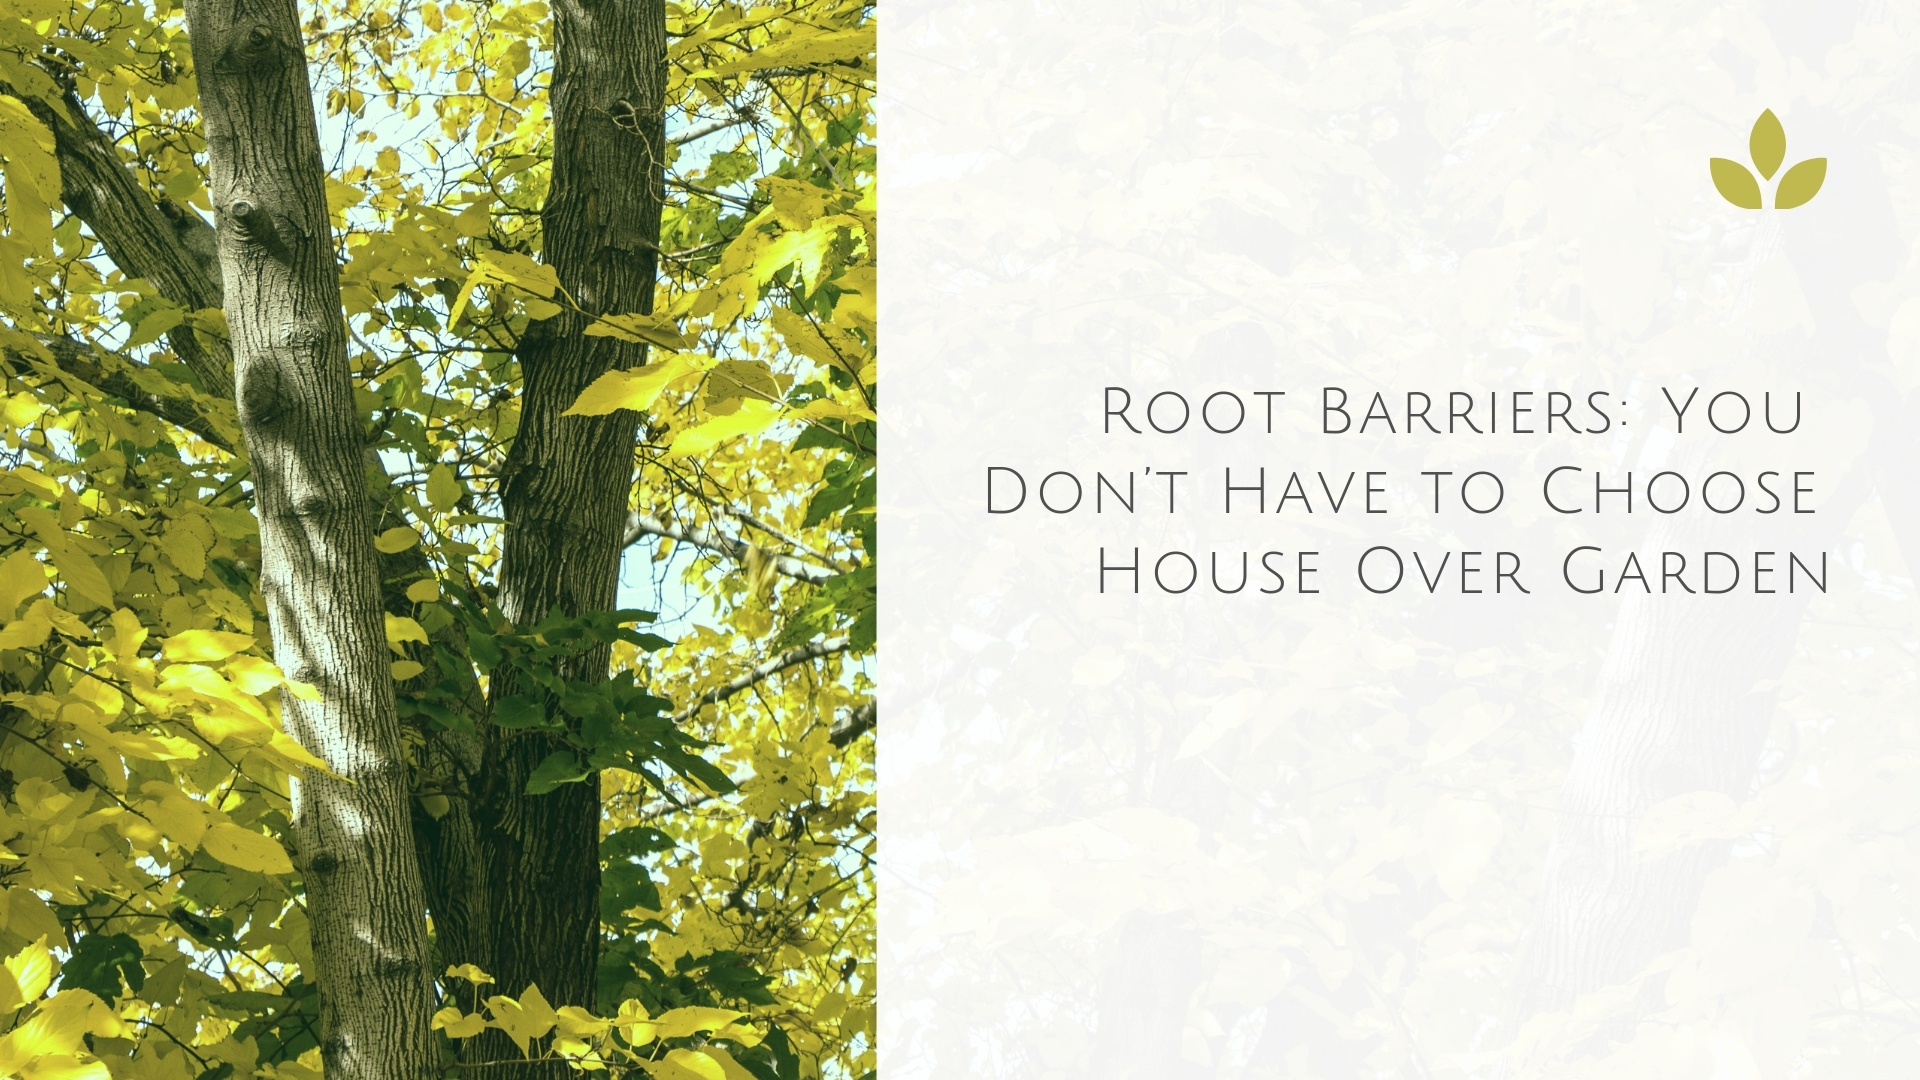 Root Barriers: You Don't Have to Choose House Over Garden